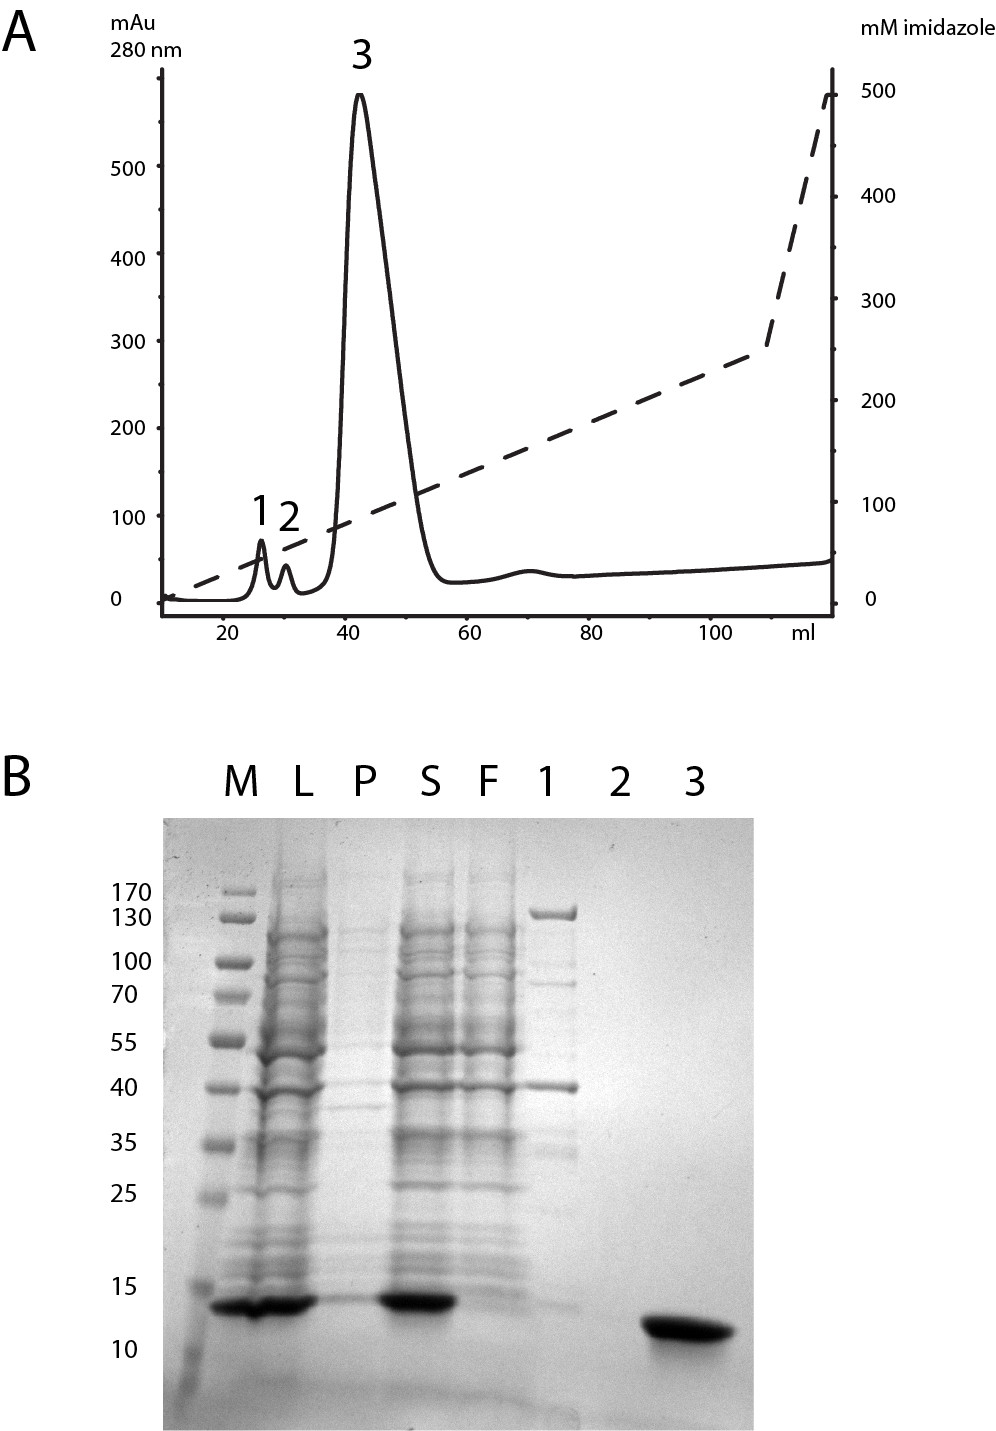 https://static-content.springer.com/image/art%3A10.1186%2F1472-6750-12-95/MediaObjects/12896_2012_Article_773_Fig1_HTML.jpg